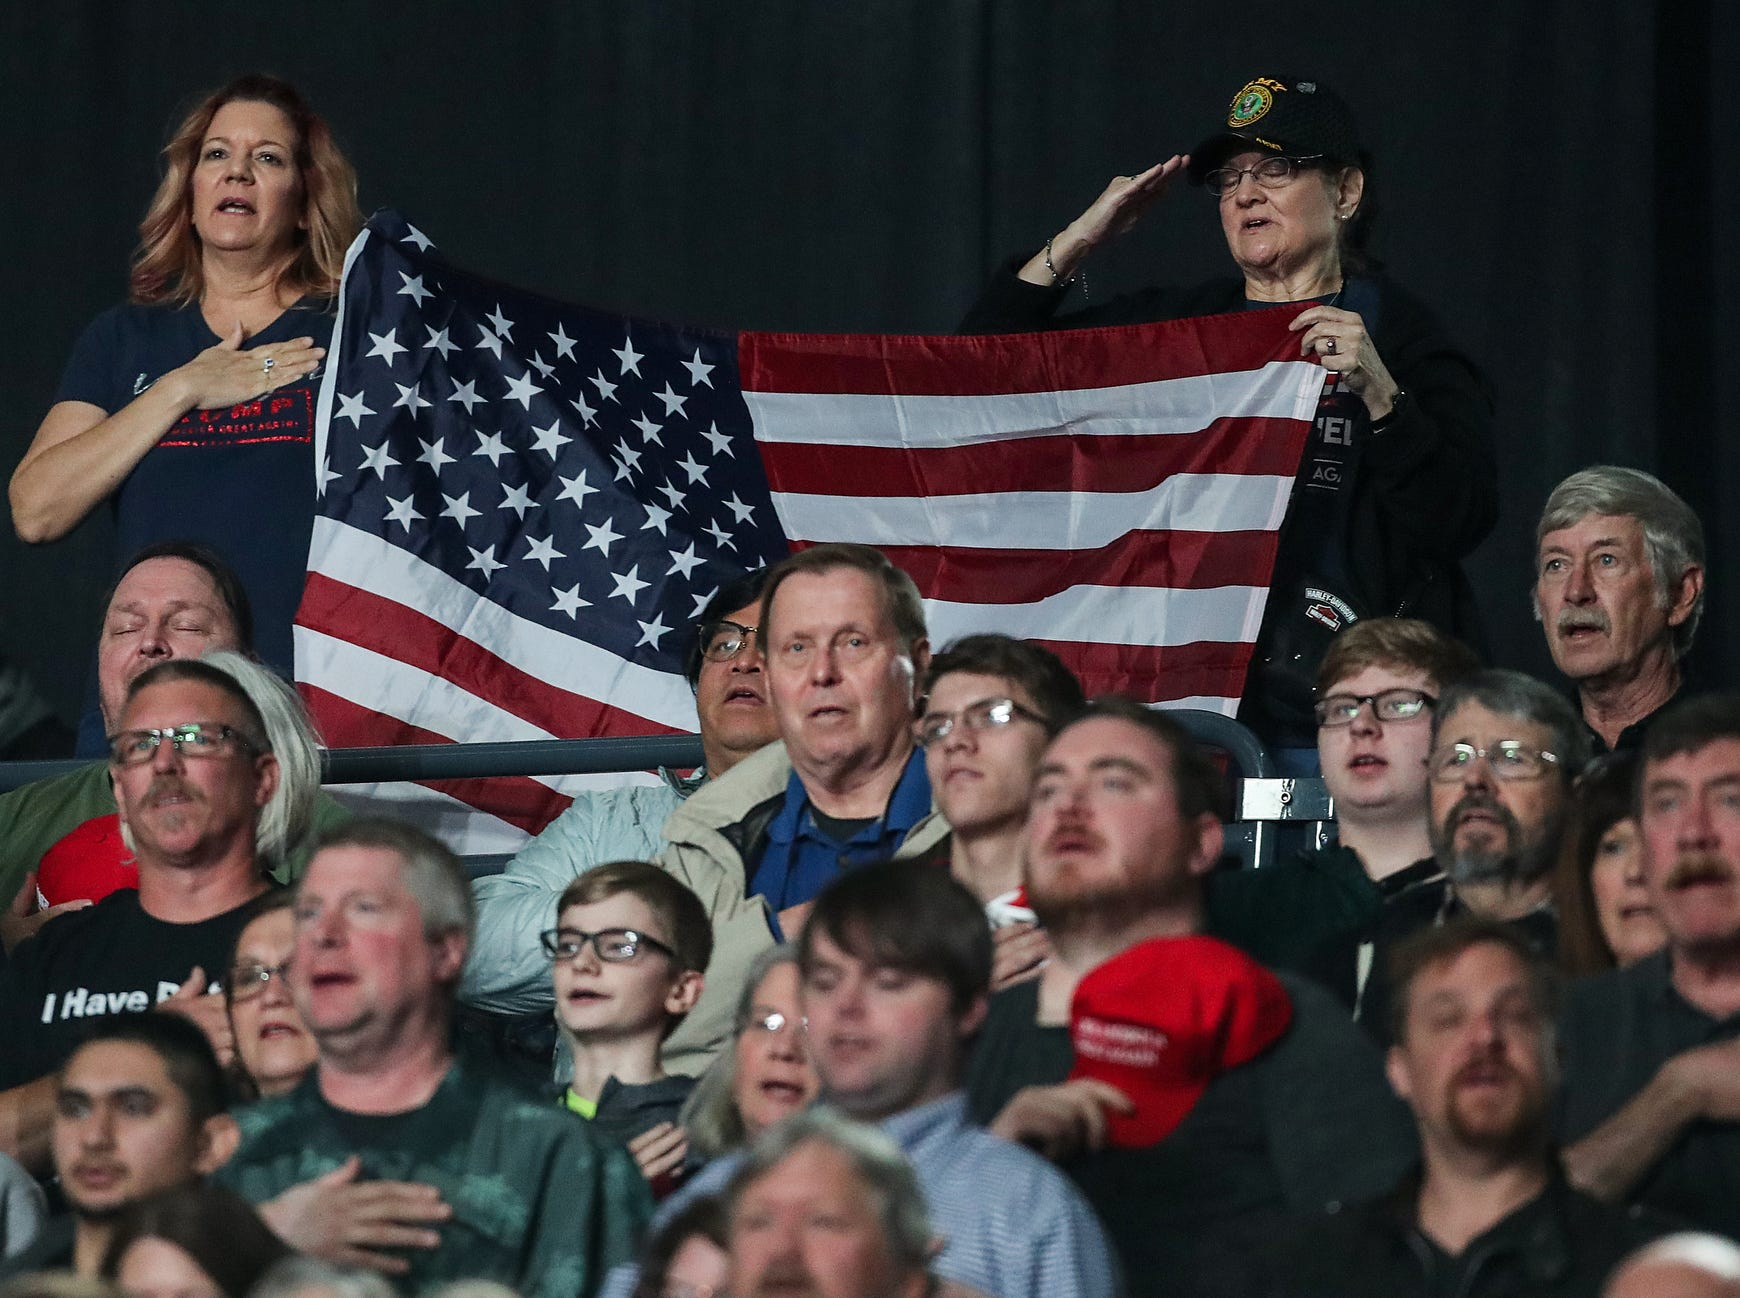 Spectators stand for the Pledge of Allegiance before the National Rifle Association Institute for Legislative Action Leadership Forum, Friday, April 26, 2019, at Lucas Oil Stadium in Indianapolis.